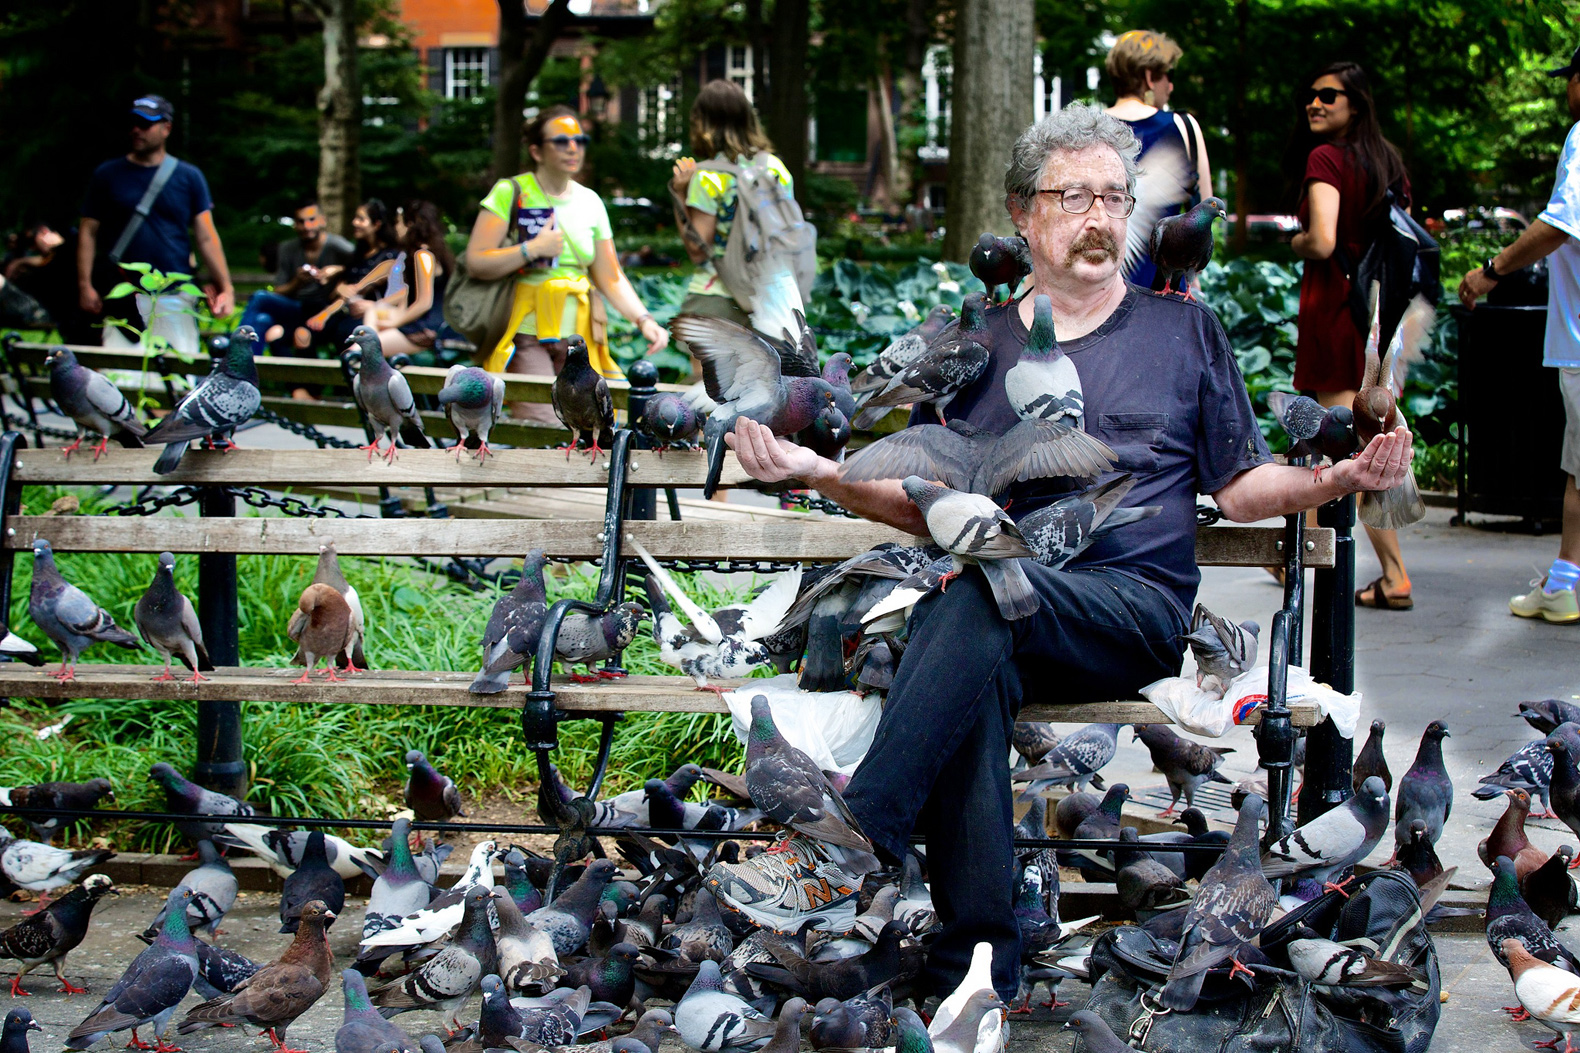 Mass pigeon kidnapping leaves Washington Square Park locals mourning feathered friends